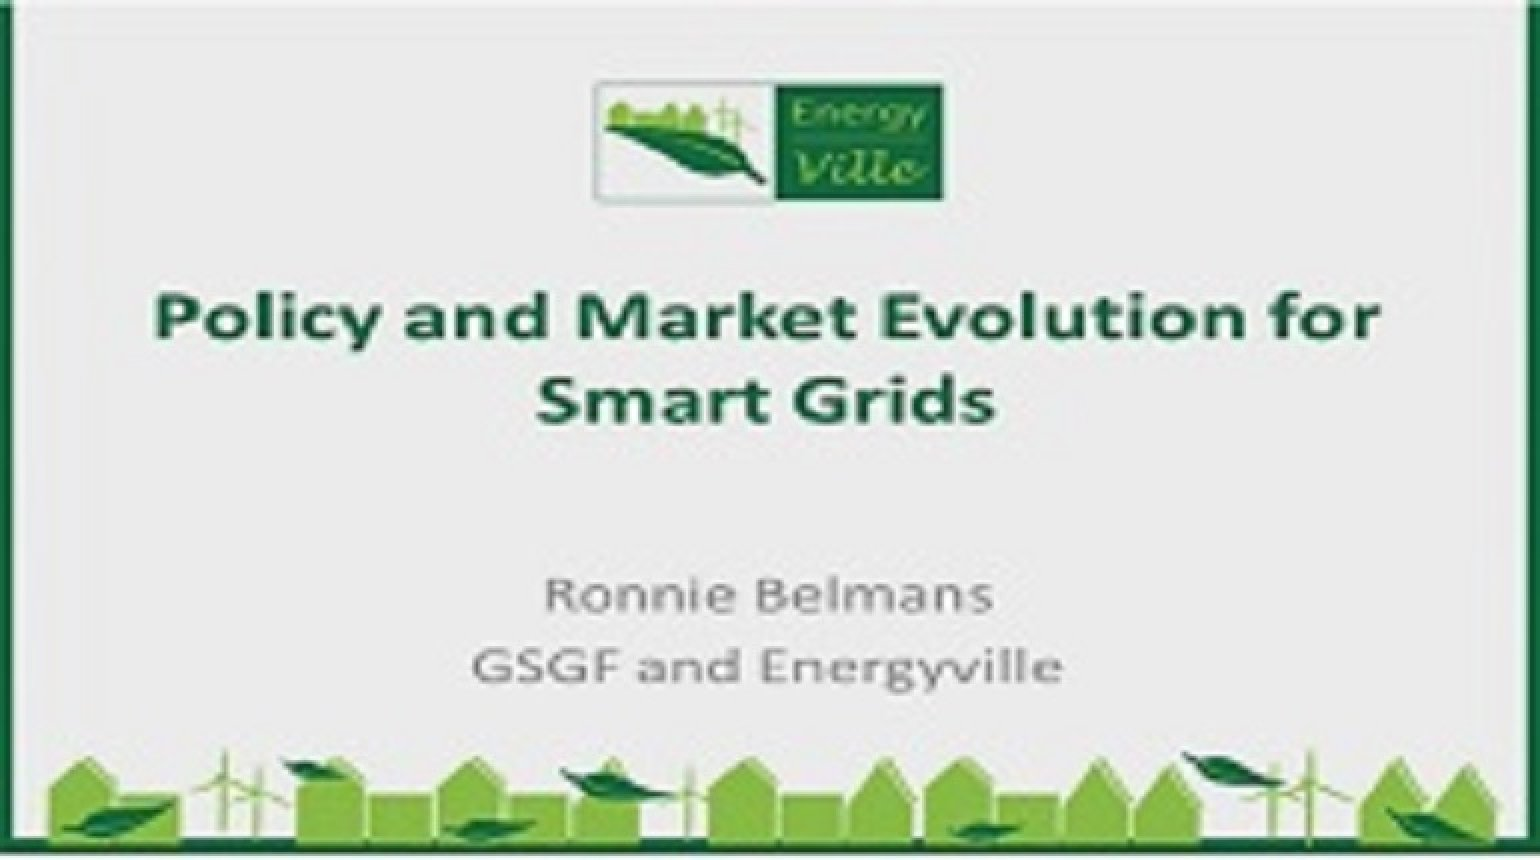 Policy Market Evolution for Smart Grids: Ronnie Belmans